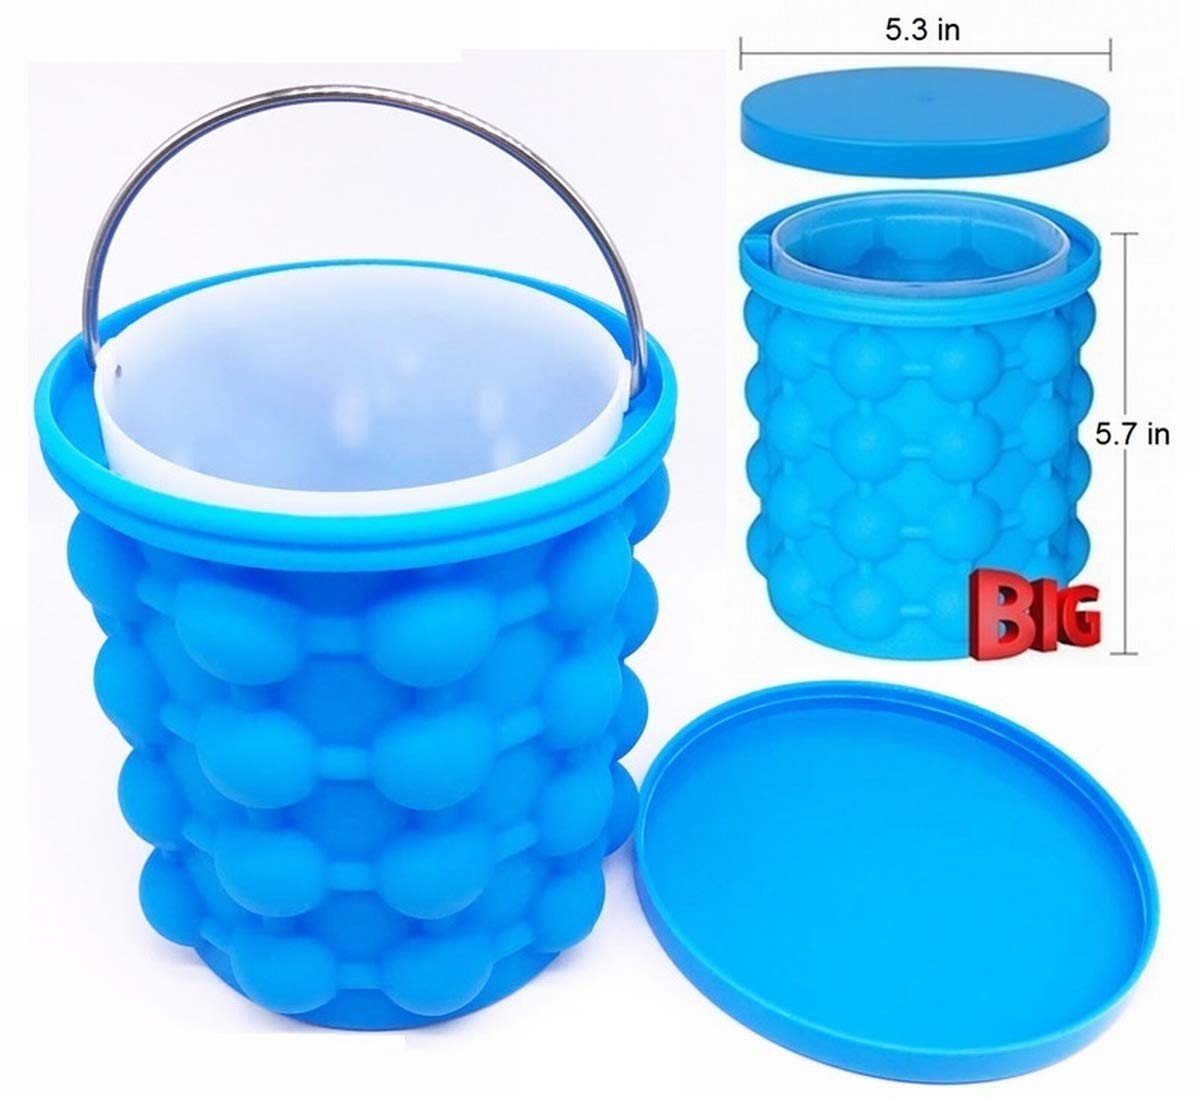 New Ice Cube Maker Genie Silicone Large (5.7 x 5.3 inch) Mold Igloo Ice Balls Maker Space Saving Outdoor Portable Cooler Unique Double Chamber Design Ice Kitchen Tool CILINDER with Seal by Green_Mall